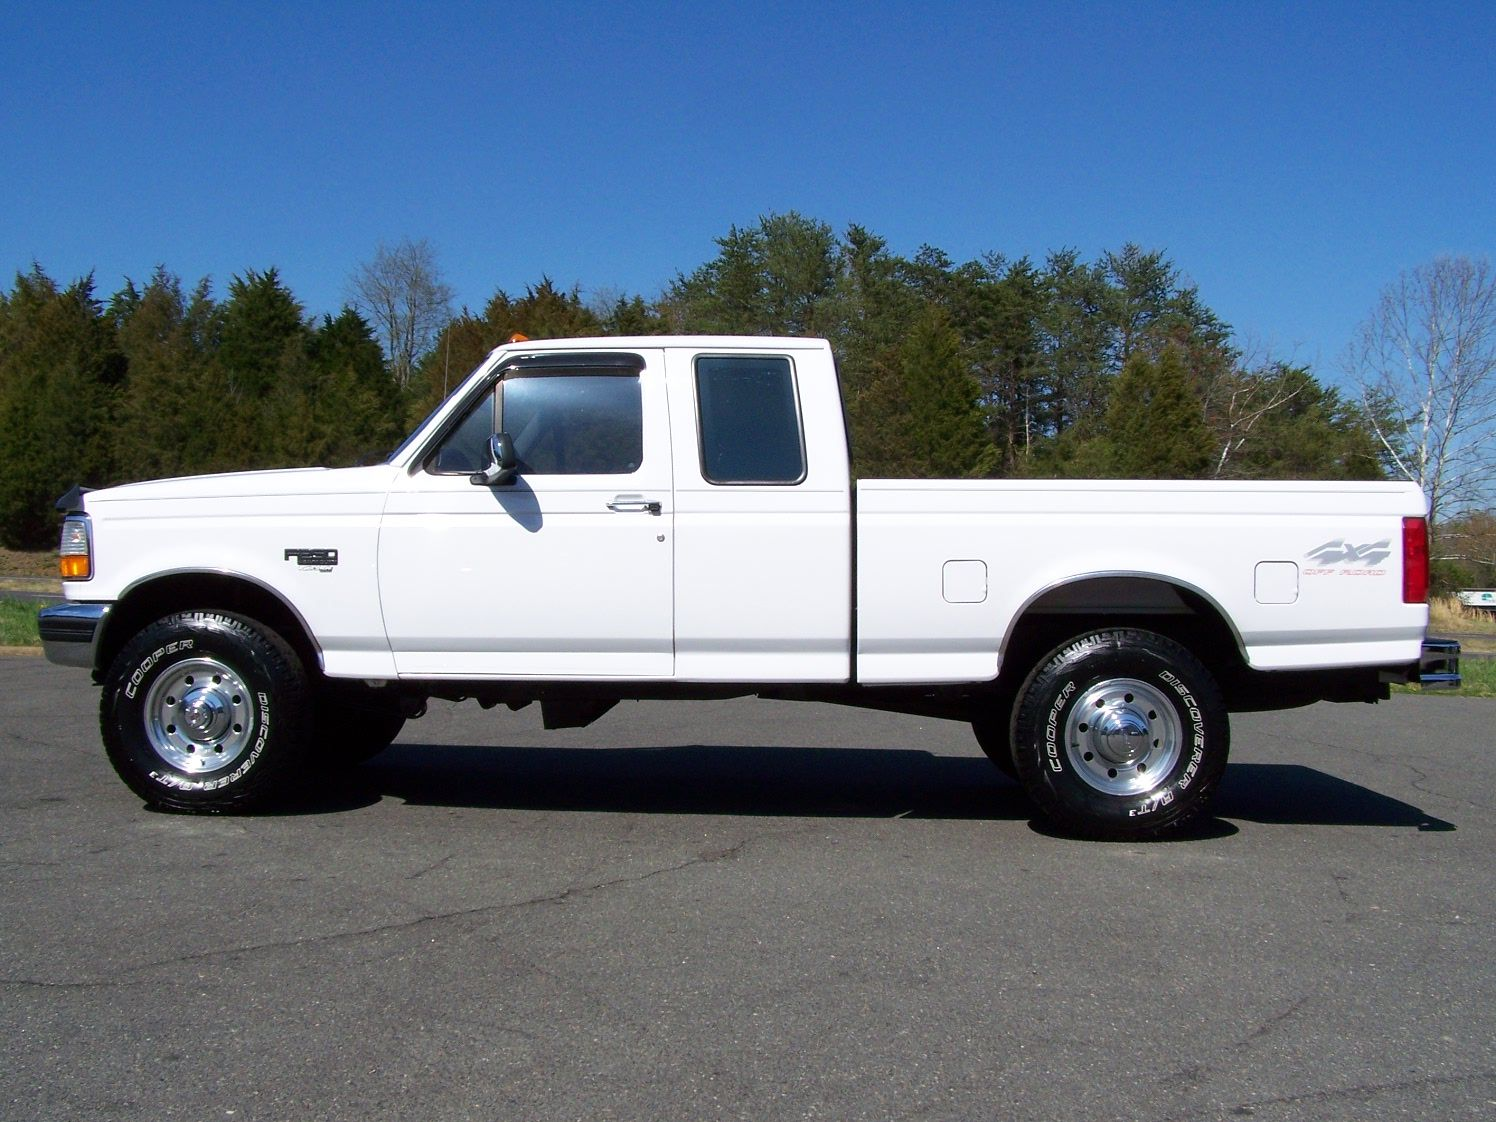 1997 ford f250 extended cab xlt 4x4 7 3l powerstroke diesel manual trans. Black Bedroom Furniture Sets. Home Design Ideas